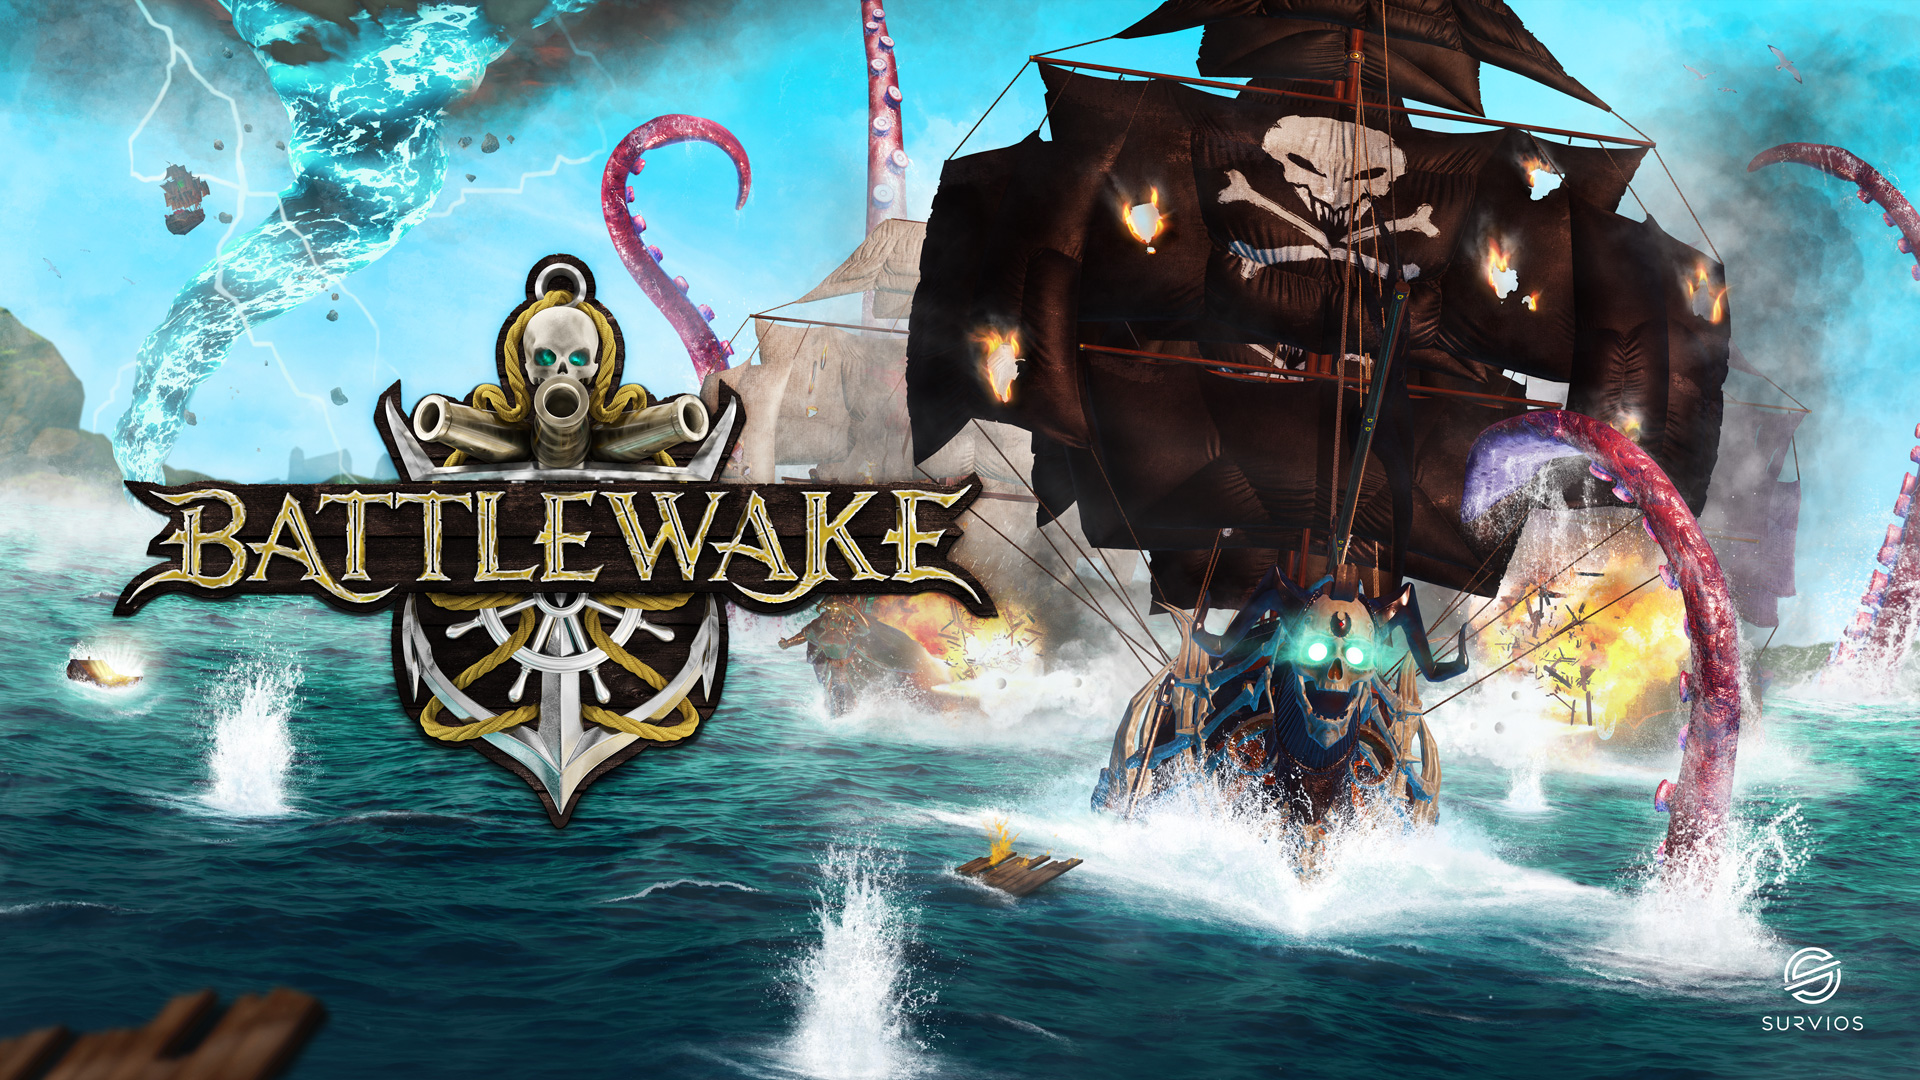 Battlewake cover image art